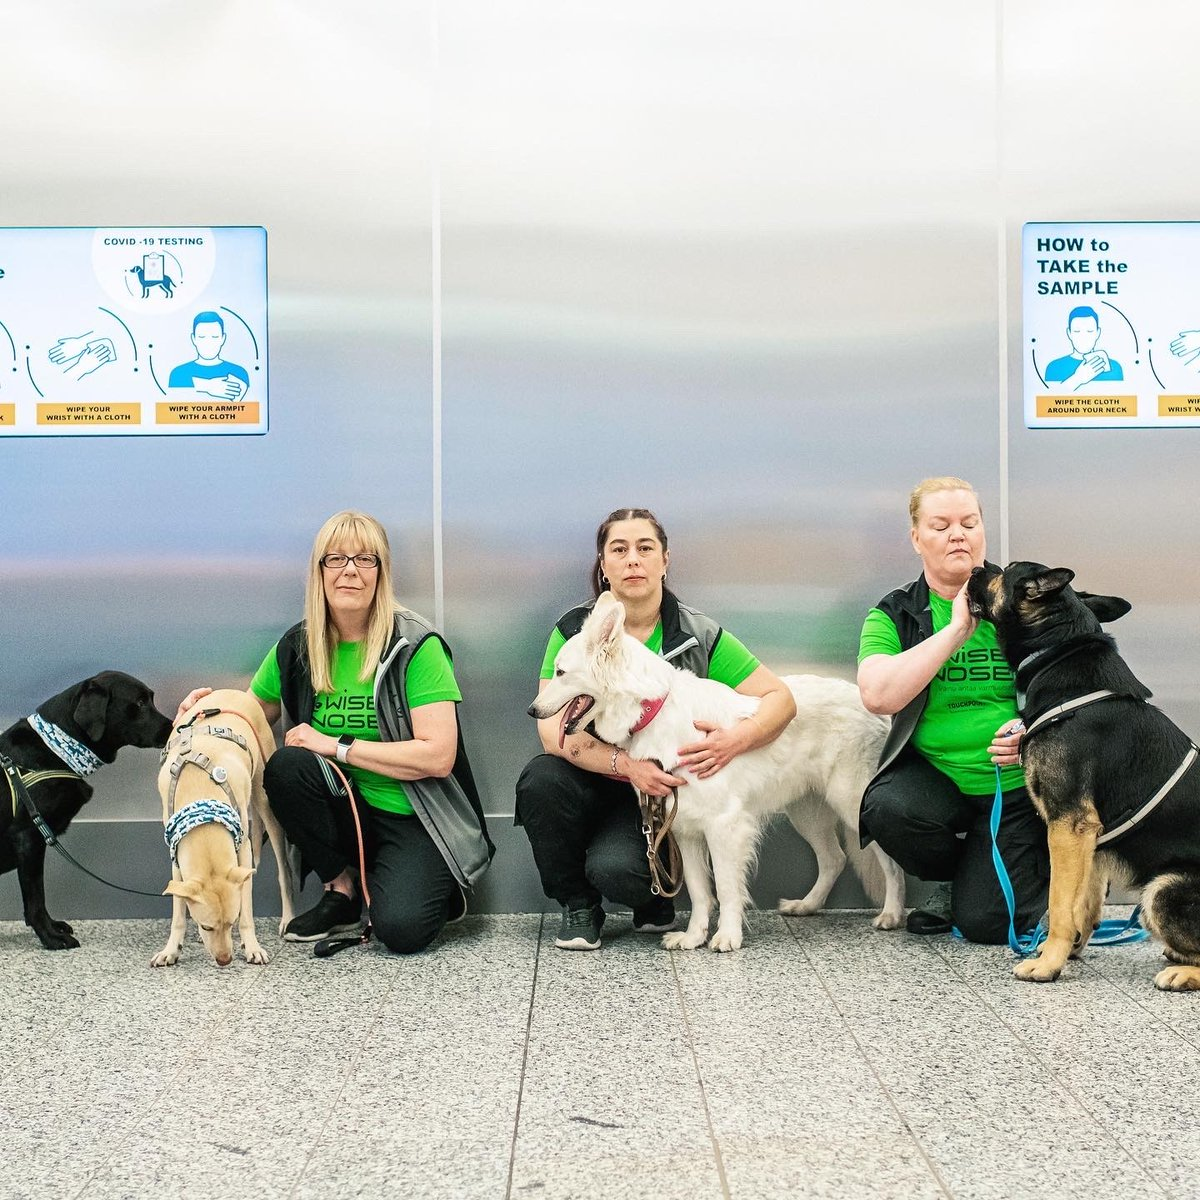 Finnair On Twitter Woof These Cute Covid 19 Dogs Have Started Their Important Duty At Helsinkiairport Detecting Passengers Infected With The Coronavirus Dogs Are Able To Smell The Virus With Almost 100 Certainty